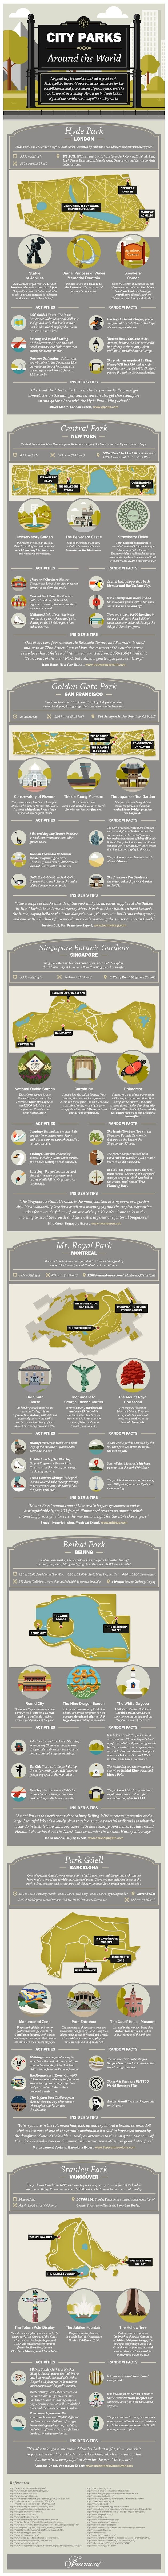 Amazing Infographic: Discover 8 World-Famous City Parks ► Hyde Park - London UK ► Central Park - New York USA ► Golden Gate Park - San Francisco USA ► Singapore Botanic Gardens - Singapore ► Mt Royal Park - Montreal Canada ► Beihai Park - Beijing China ► Park Guell - Barcelona Spain ► Stanley Park - Vancouver Canada  For each park, the infographic covers information including opening hours, size, location and getting there, points of interest, random facts and insider tips.